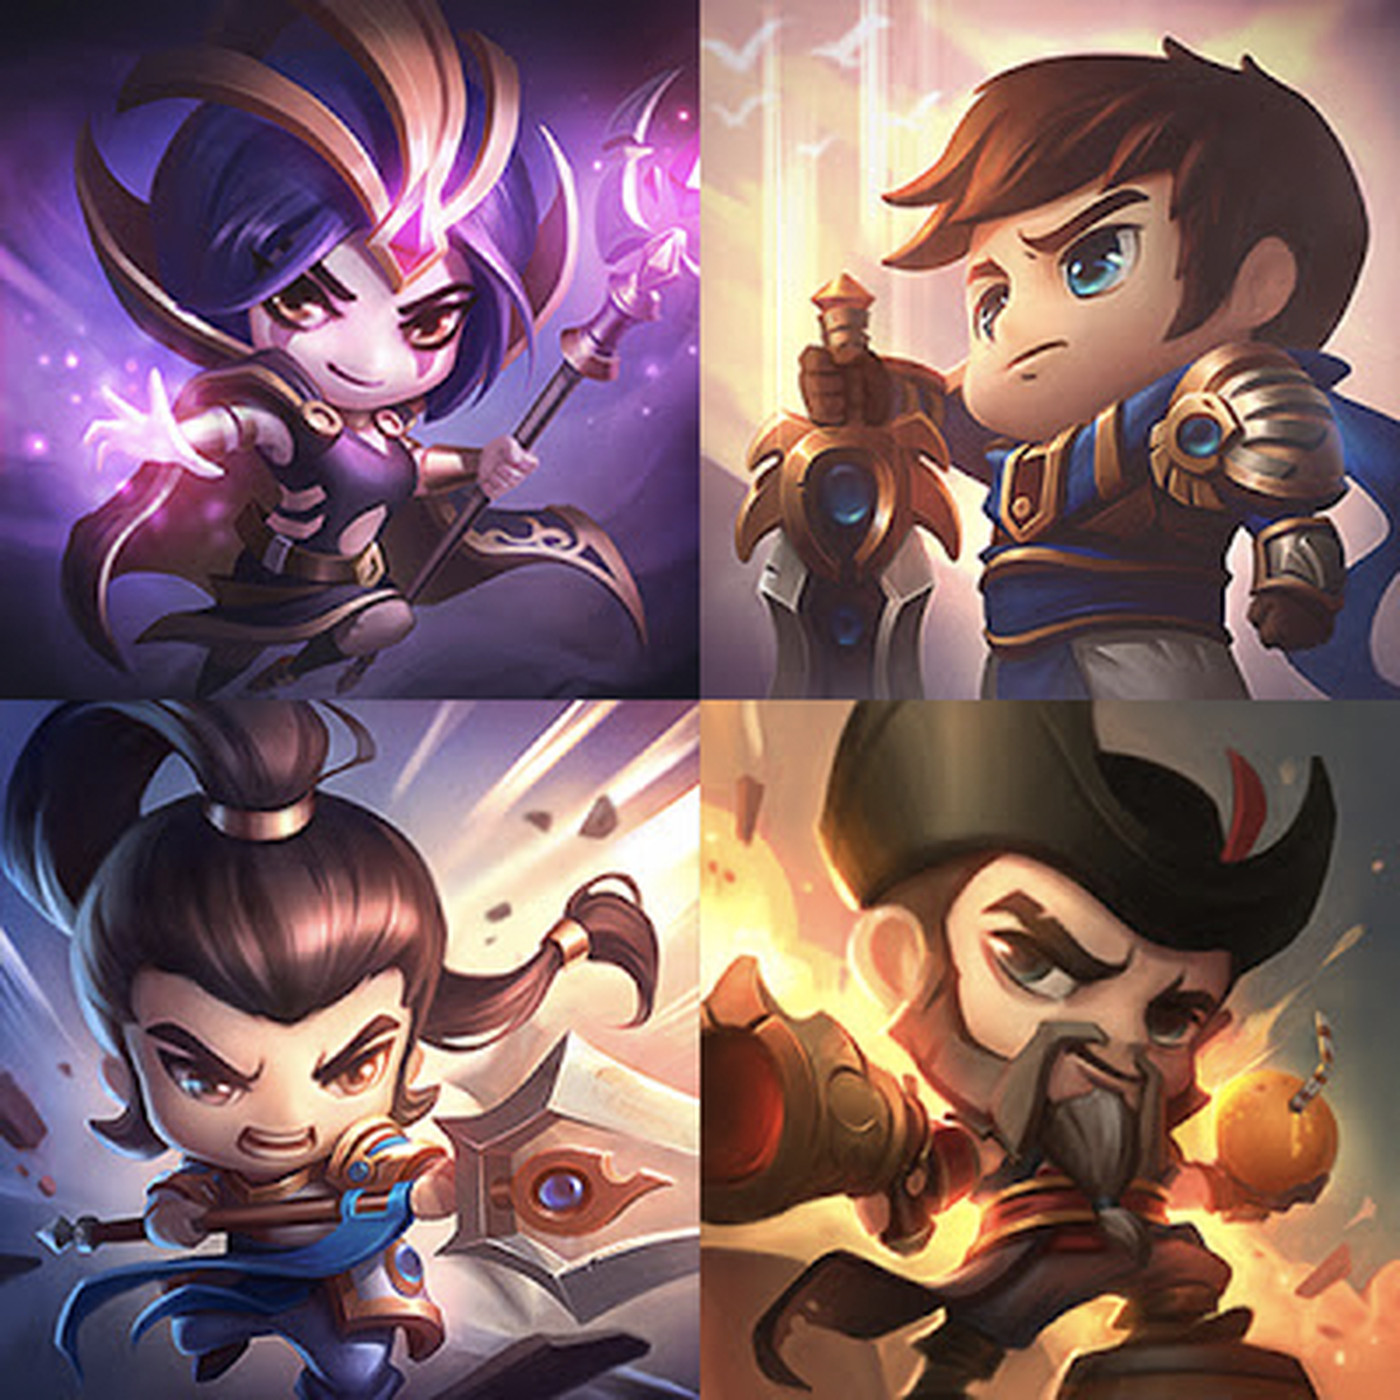 New cute summoner icons for Vayne, Nasus, and more added to PBE